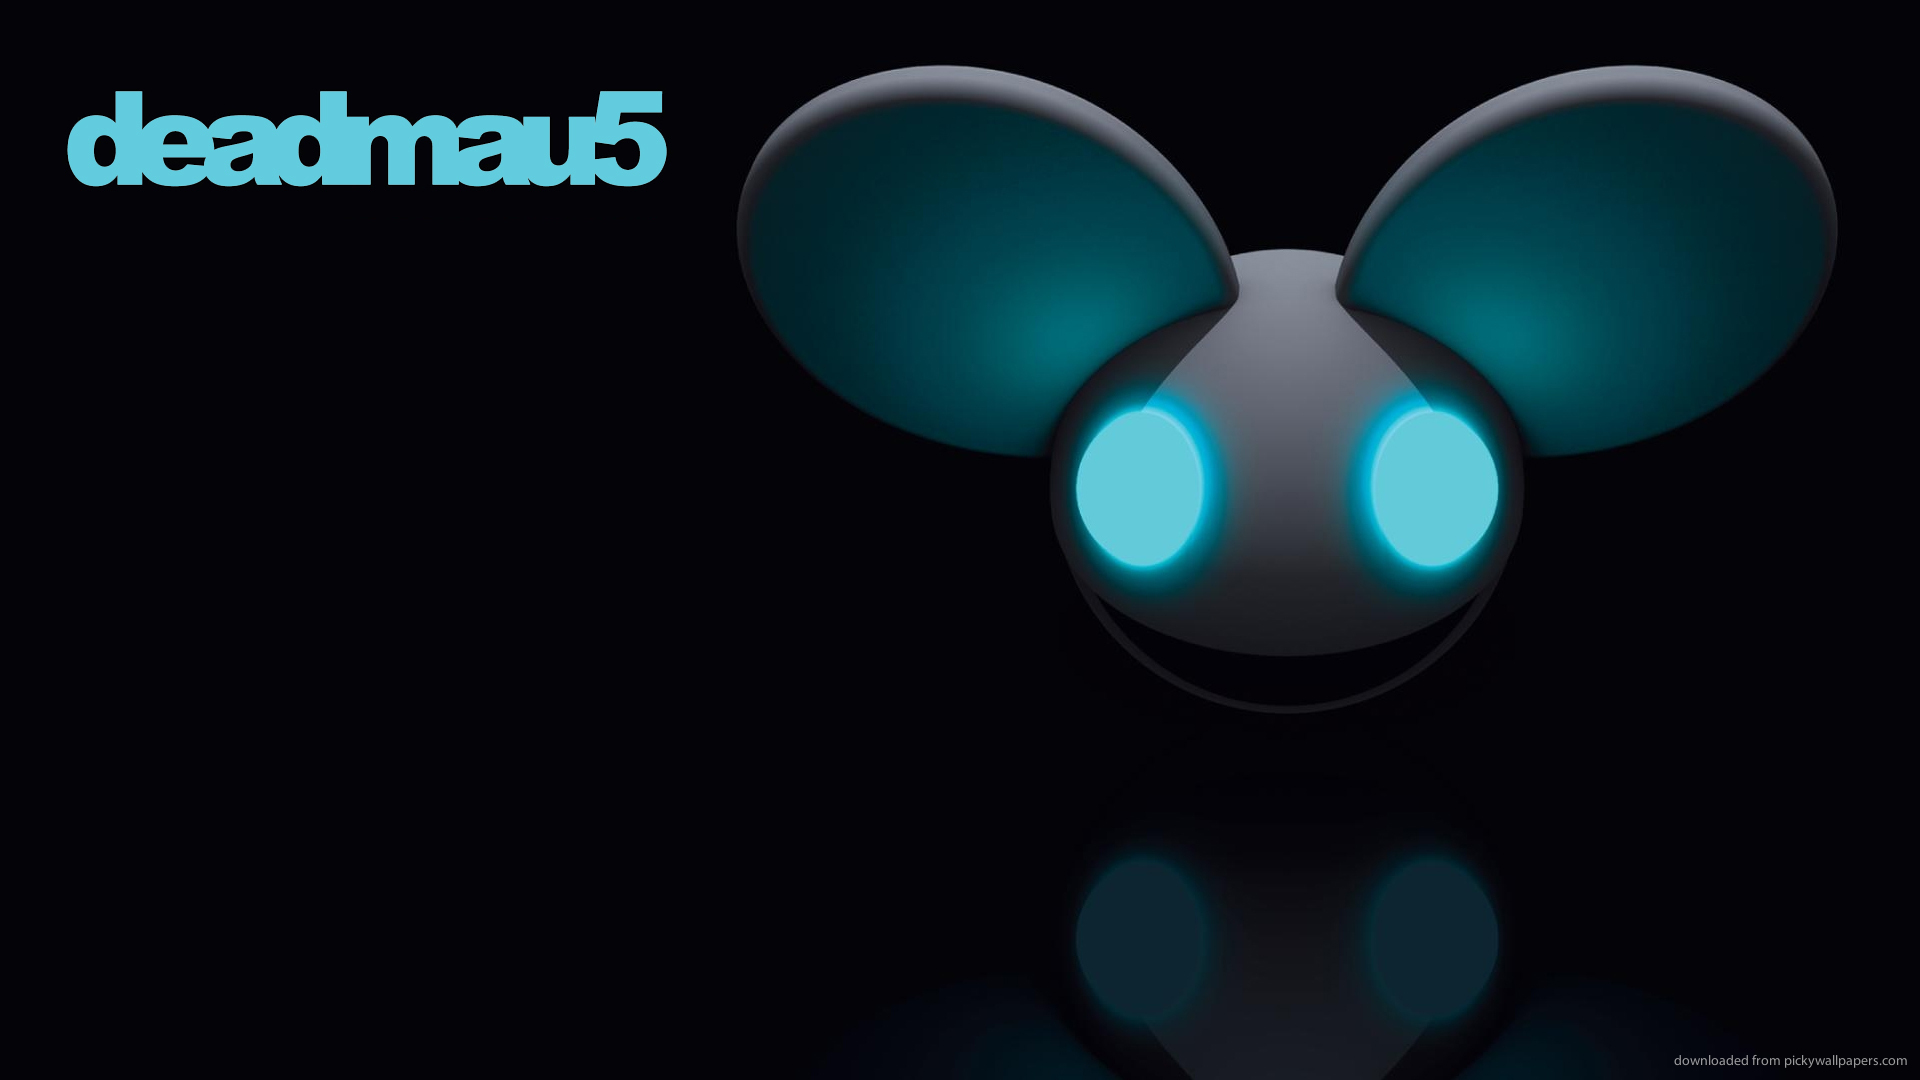 <b>Deadmau5 Wallpaper</b> Group with 77 items